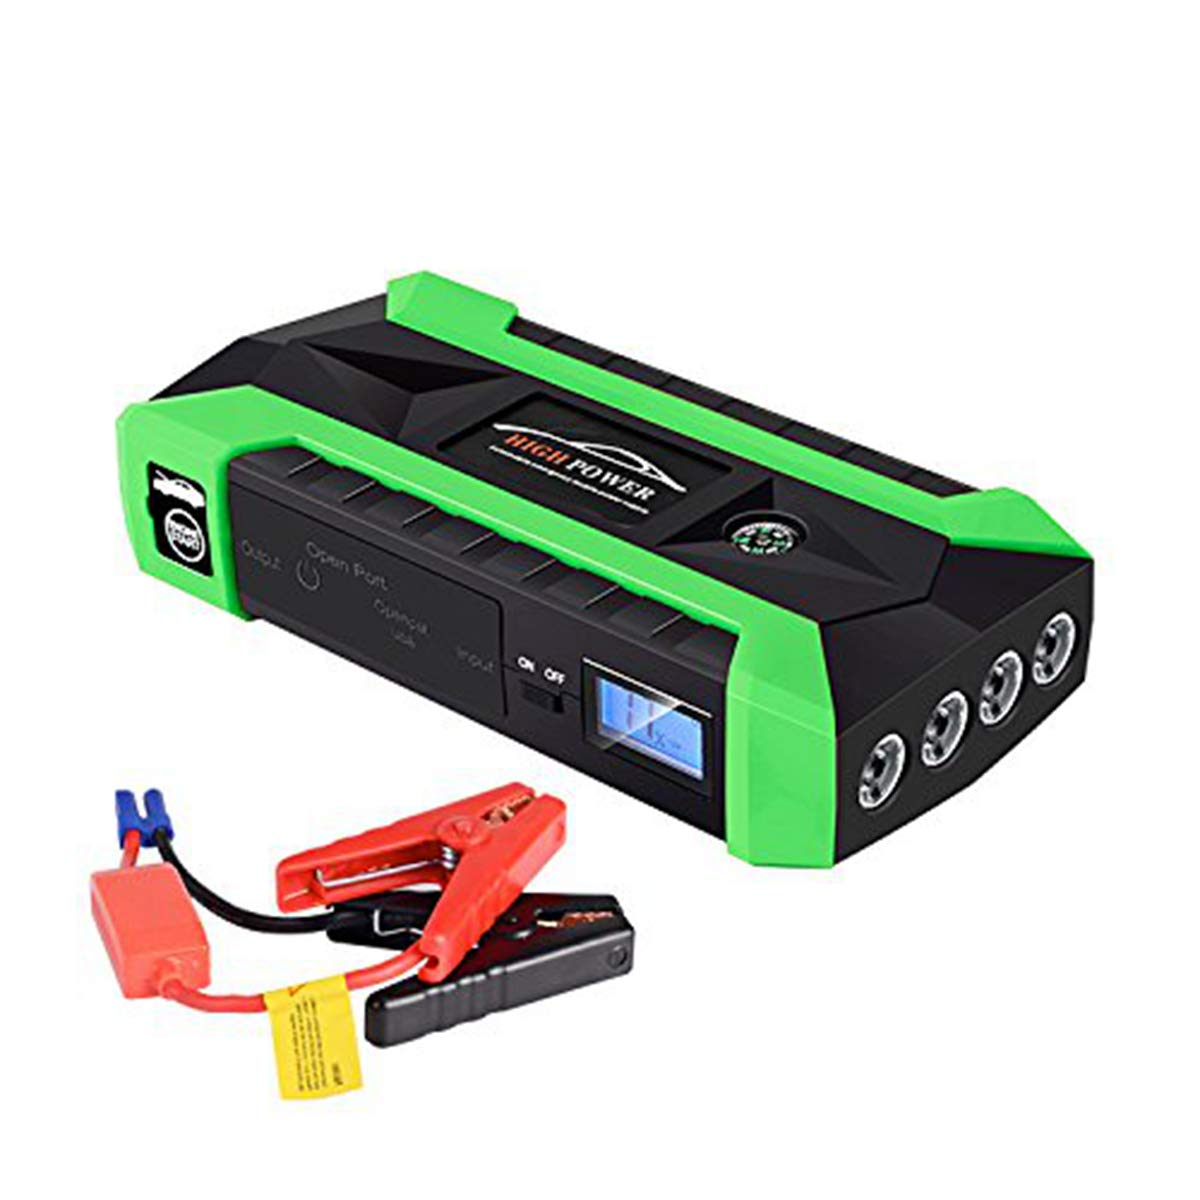 Portable Car Jump Starter 600A Peak 20000mAh/89800mAh (up to 6.0L Gas, 3.0L Diesel Engine) Auto Battery Booster and Phone Charger with Smart Jumper Cables Power Pack